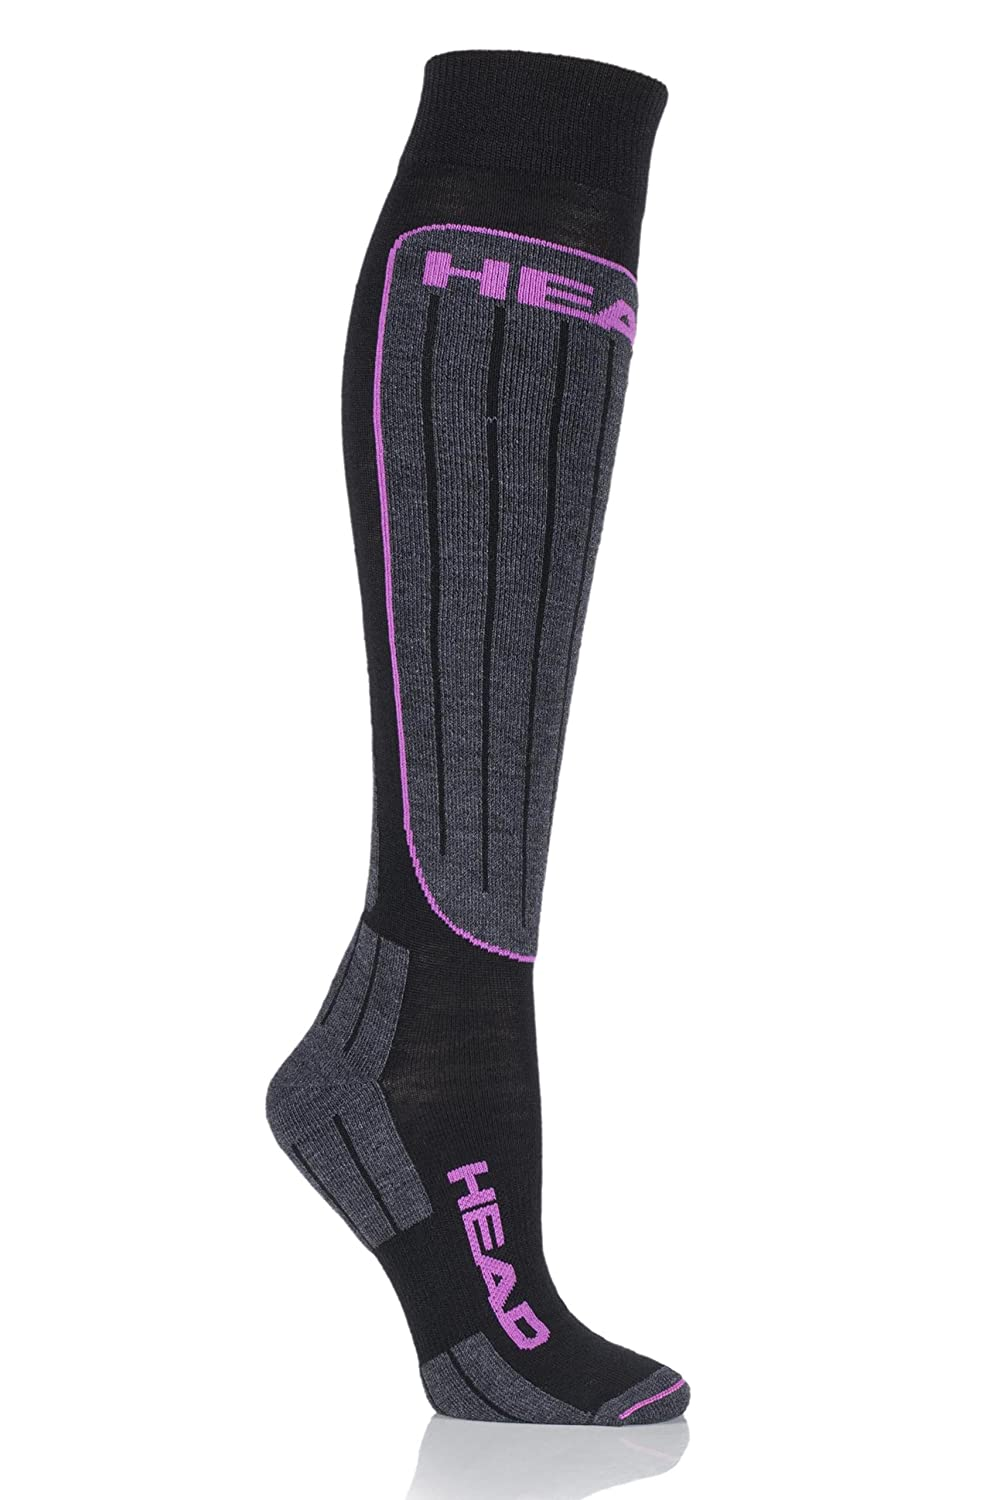 Head Damen, Sportsocken, HEAD SKI PERFORMANCE KNEEHIGH 1P UNISEX